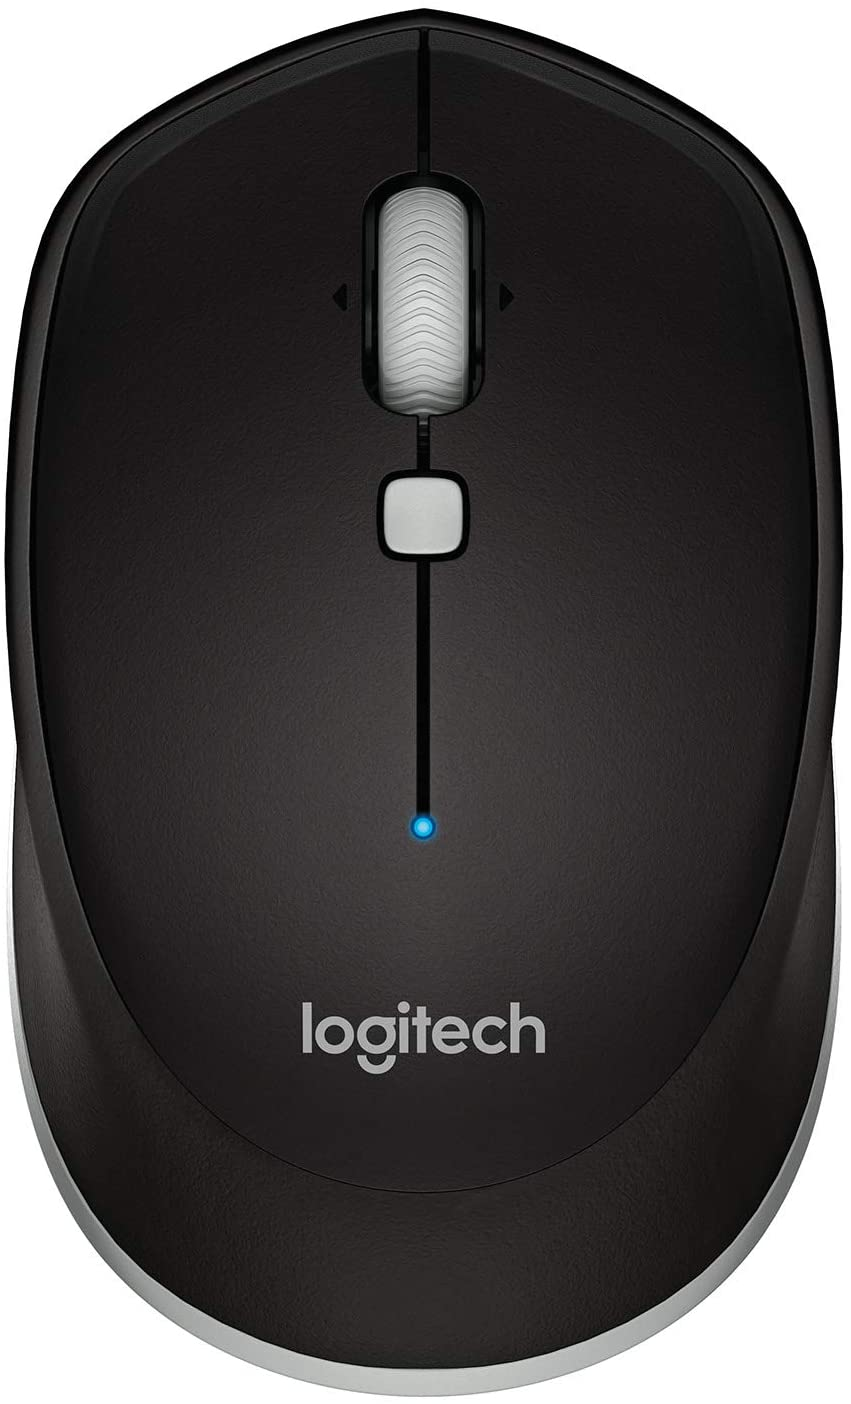 Logitech M535 Bluetooth Mouse Compact Wireless Mouse with 10 Month Battery Life Works with Any Bluetooth Enabled Computer, Laptop or Tablet Running Windows, Mac OS, Chrome or Android, Gray - Black